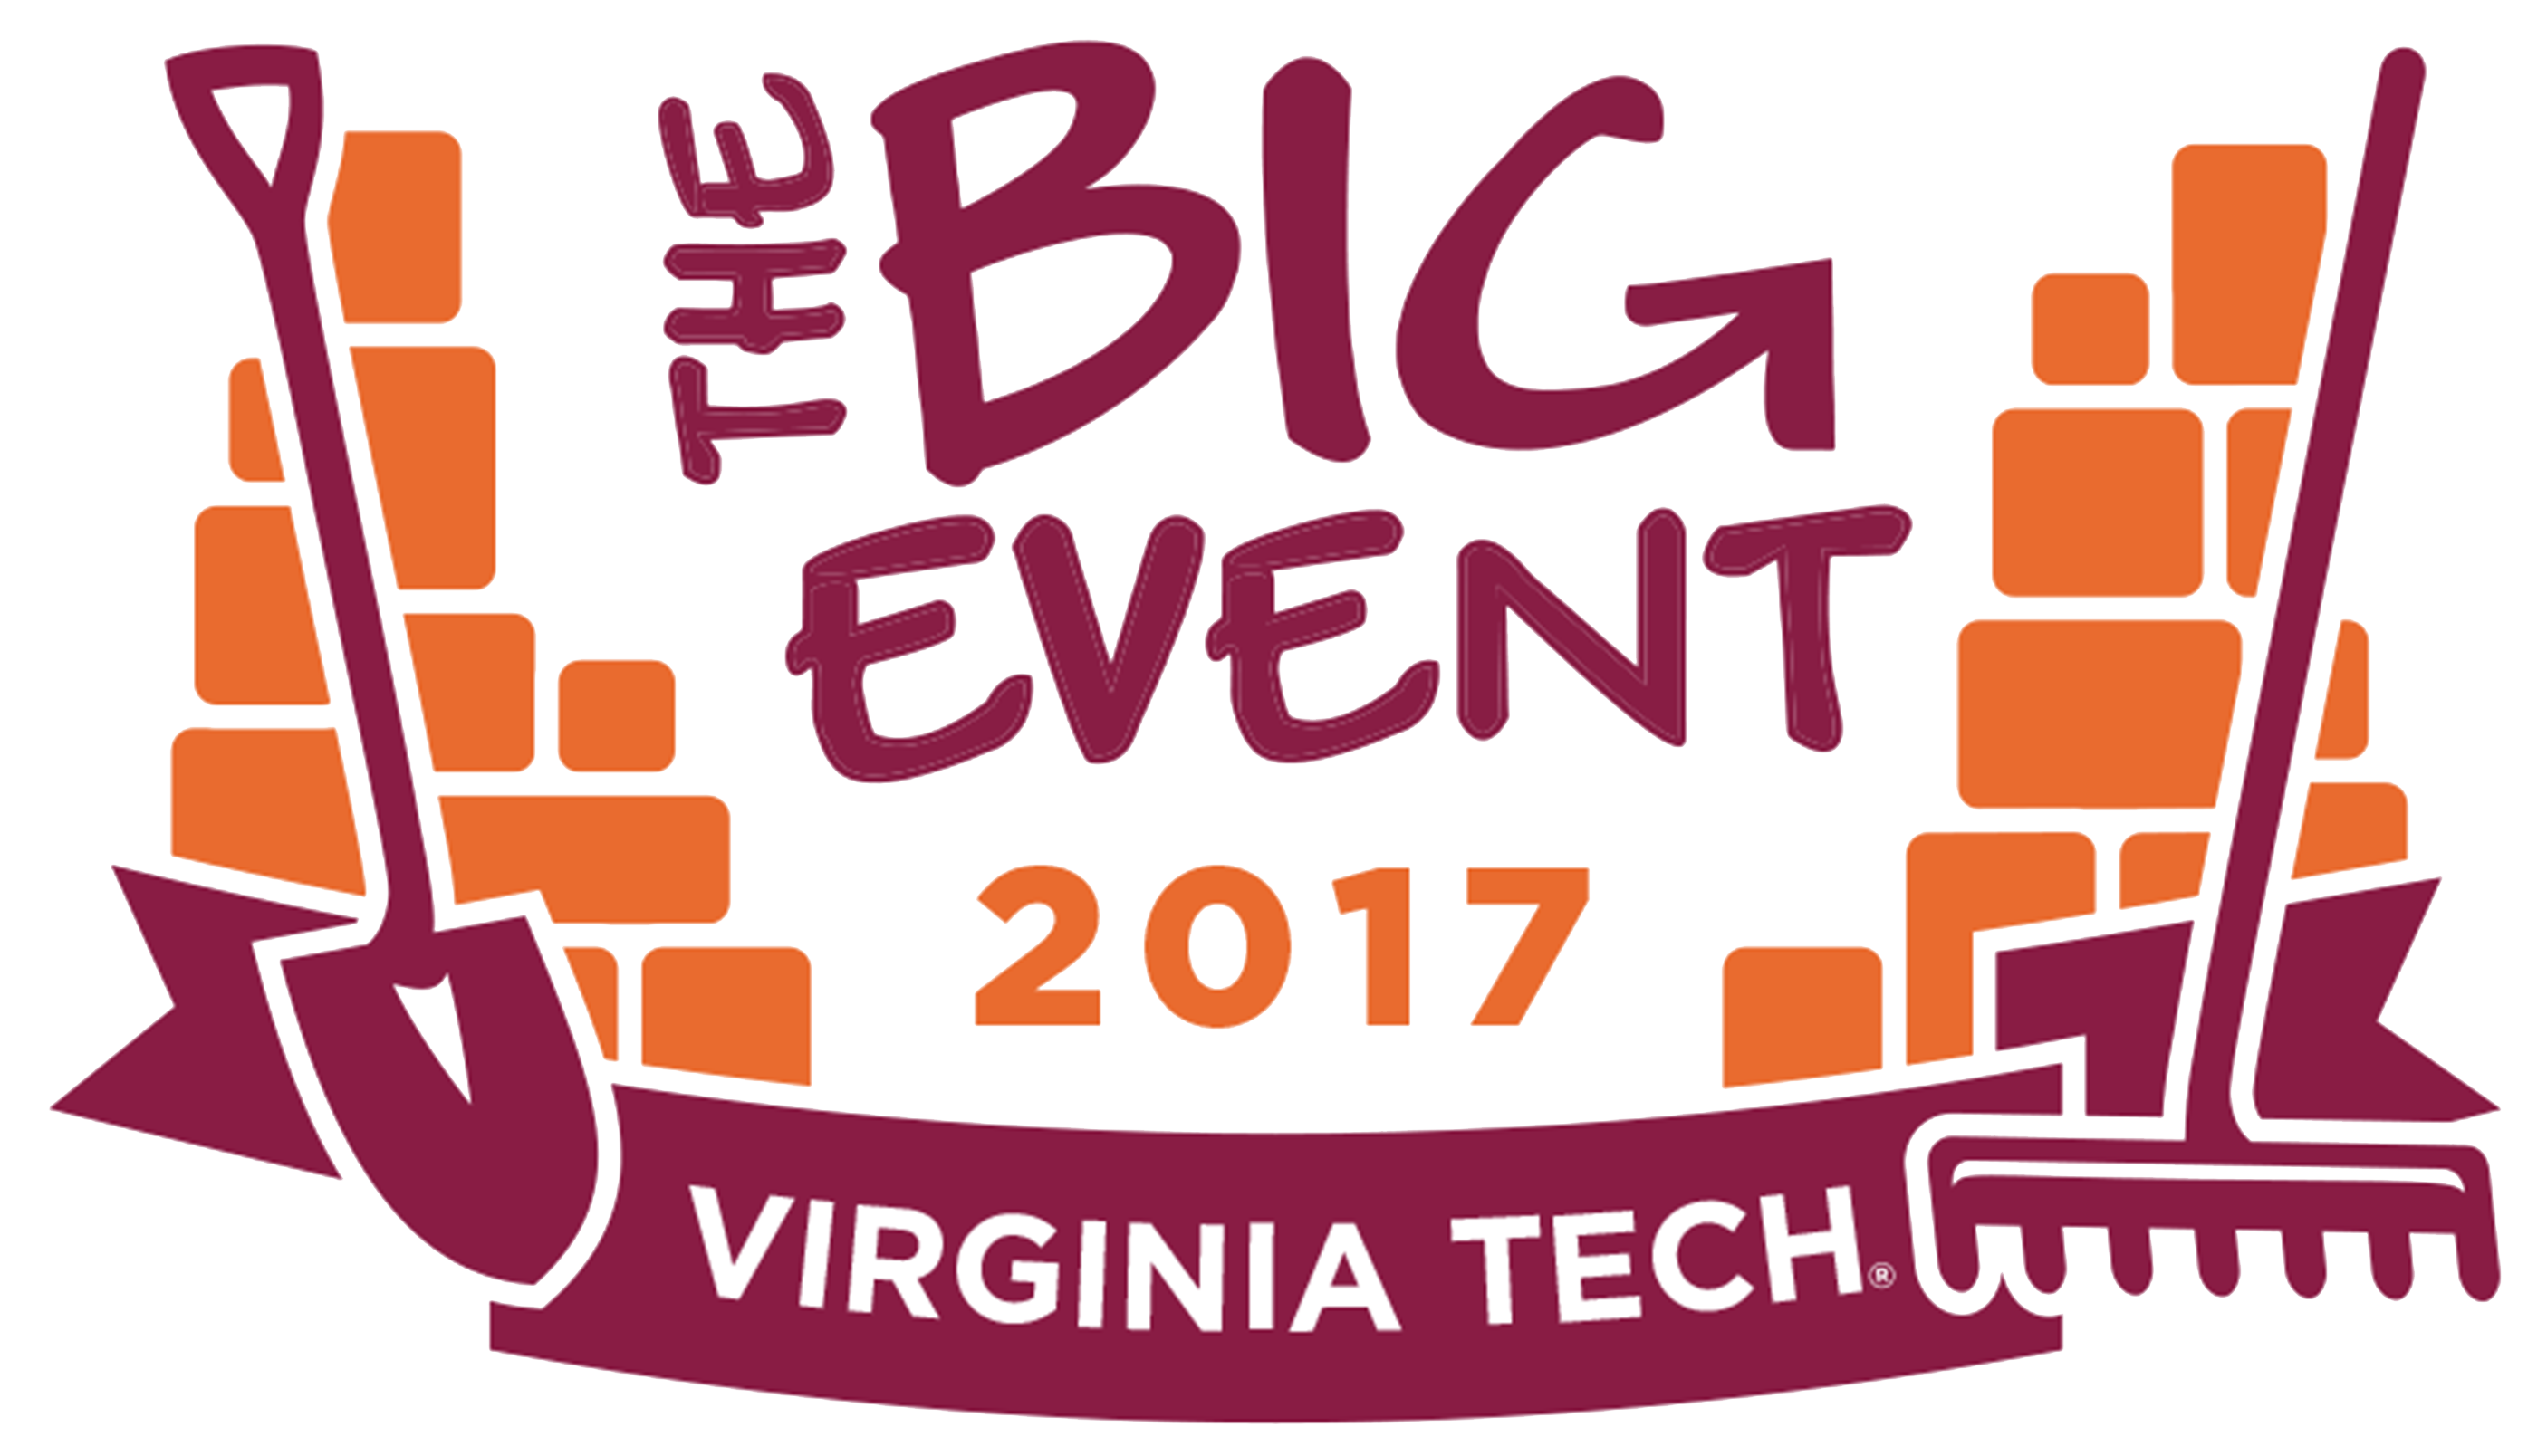 exec team the big event at virginia tech the big event logo